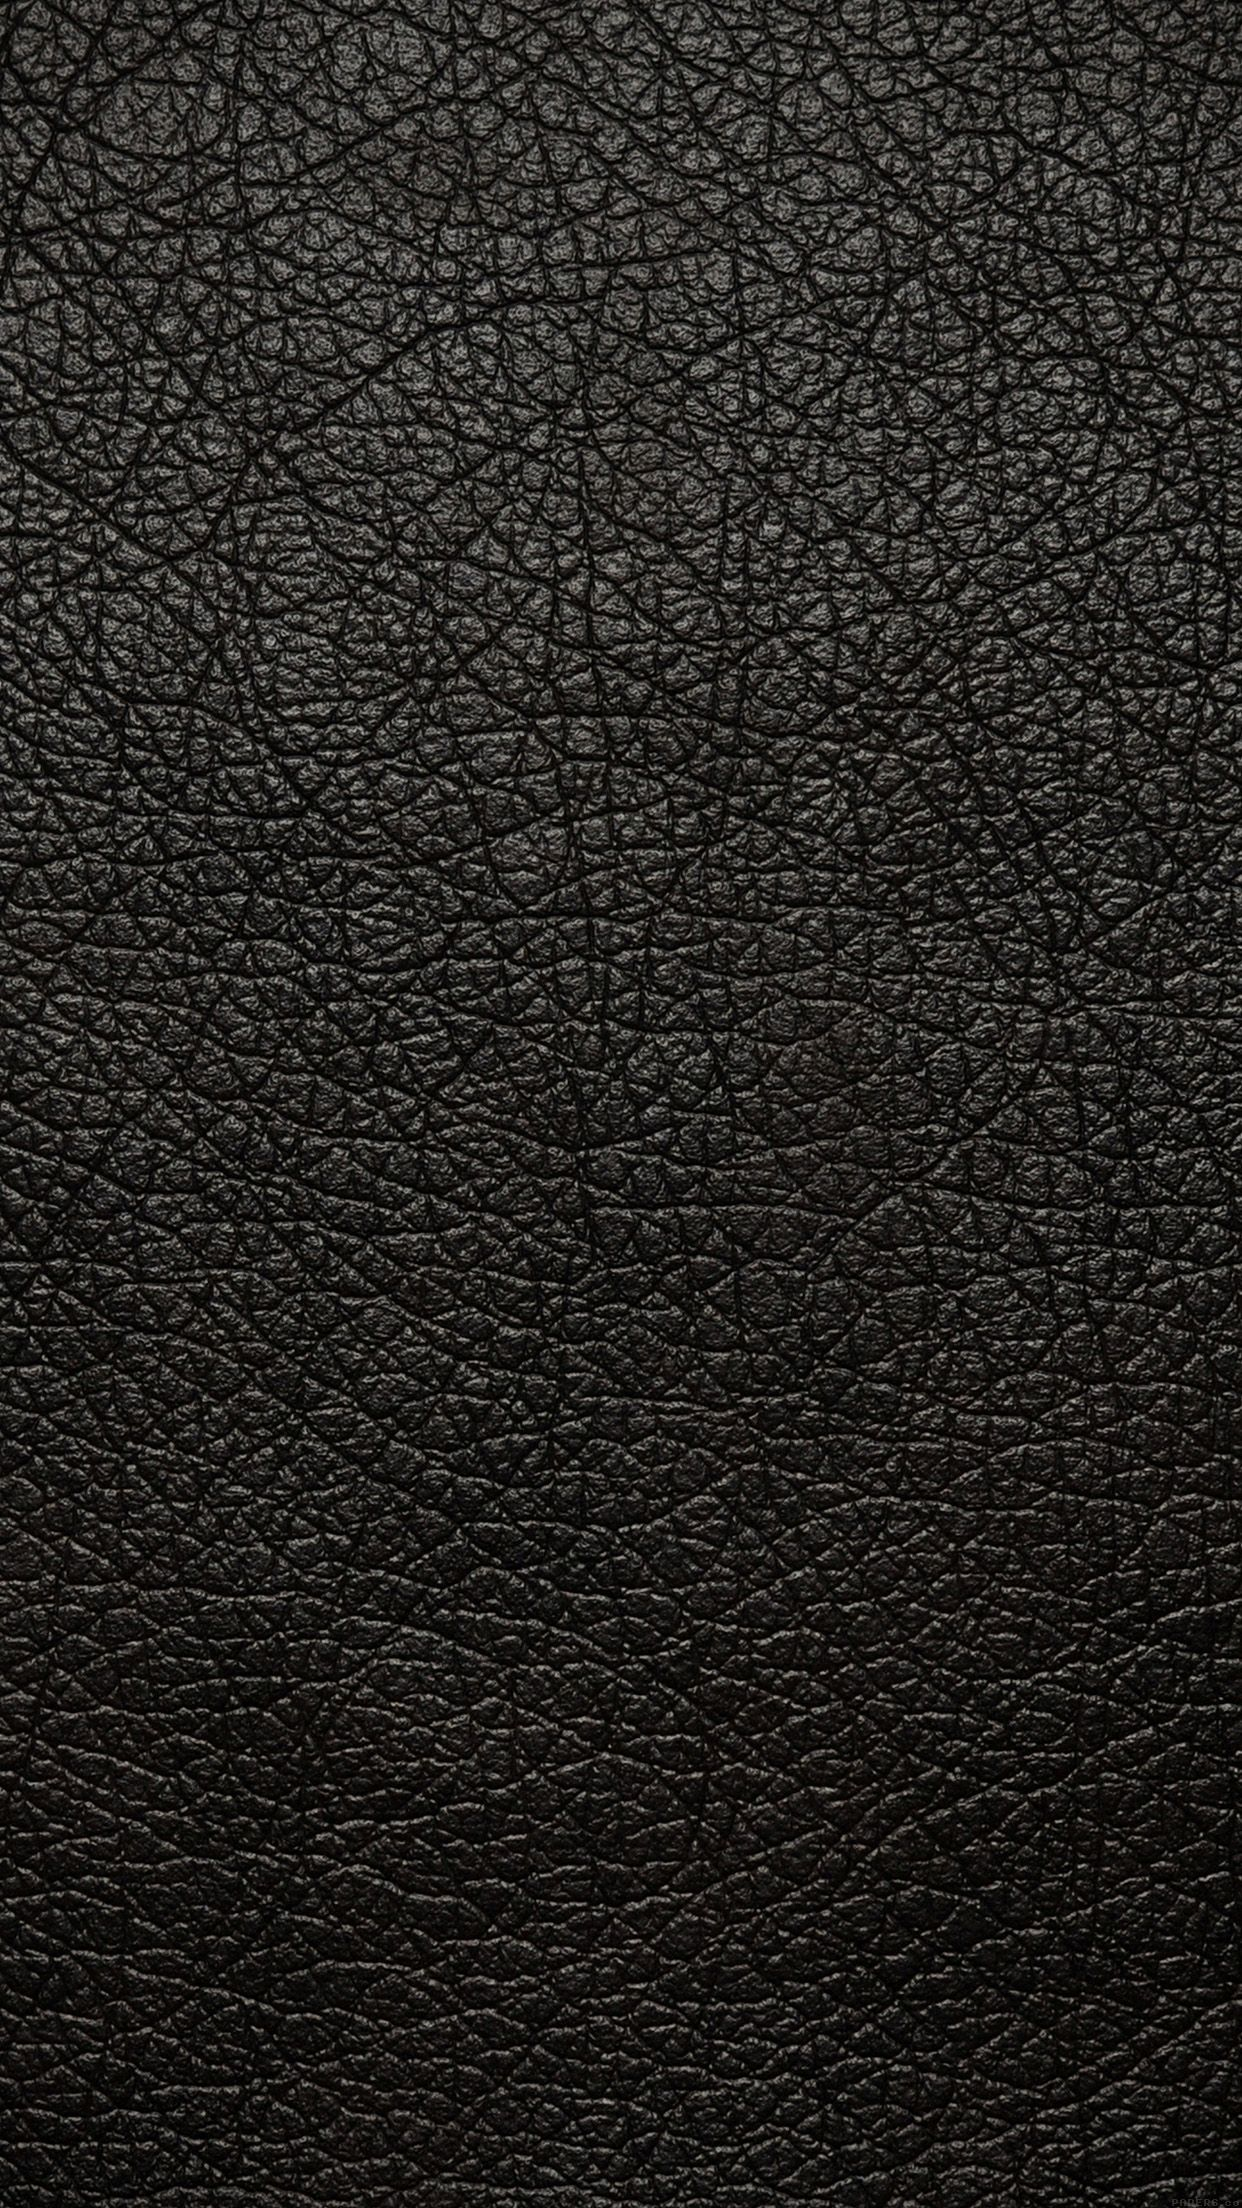 leather wallpaper iphone 6